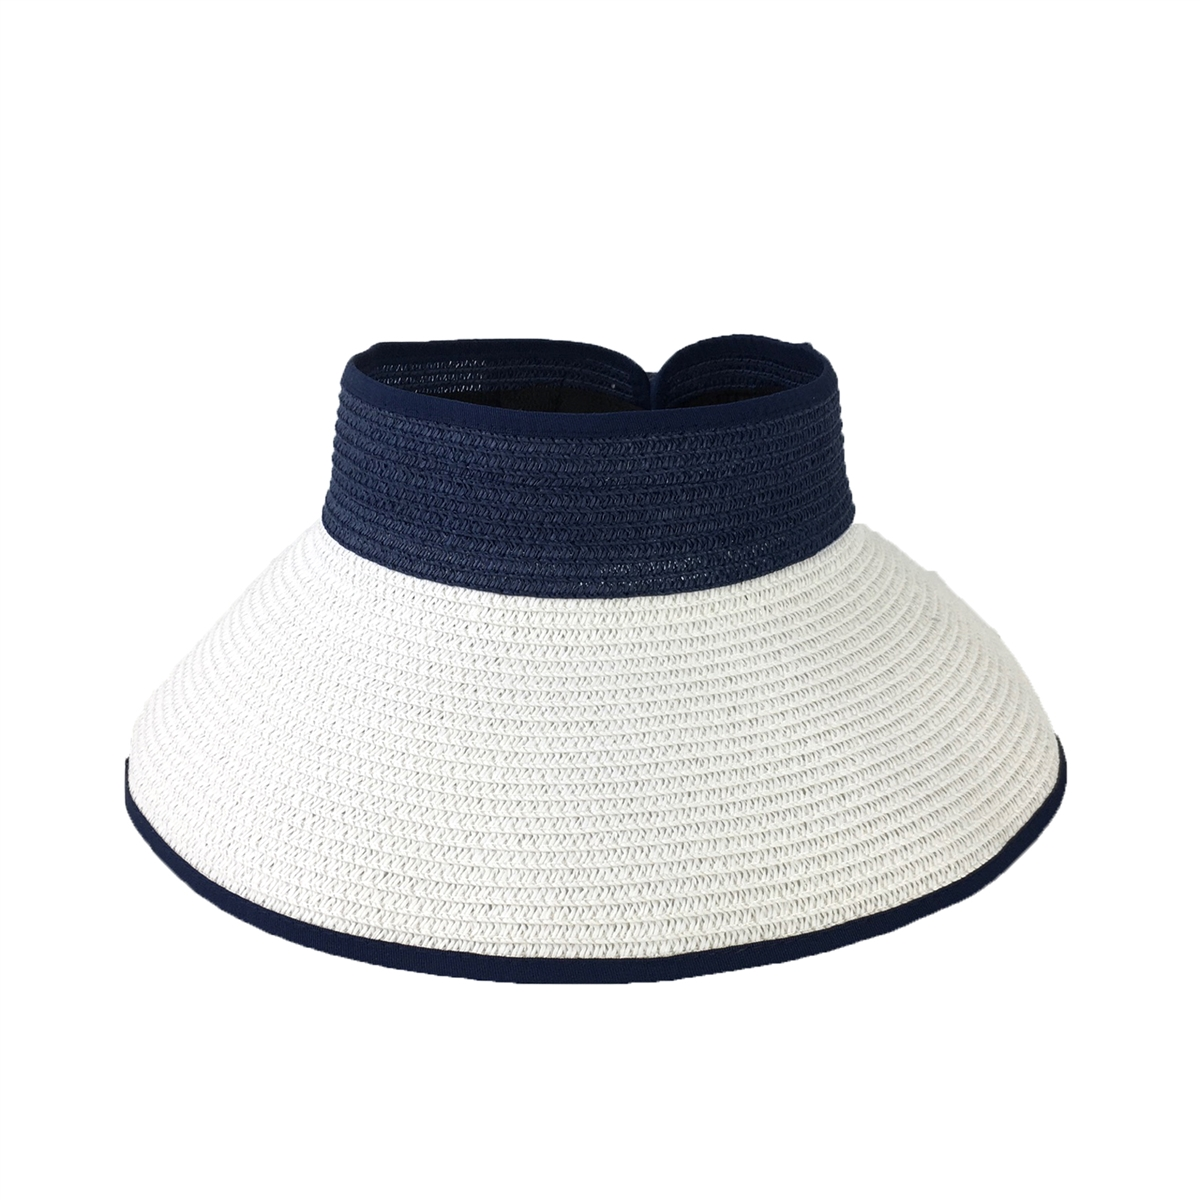 217fc06a Magid Two-Tone Packable Wide Brim Straw Sun Visor, Navy White